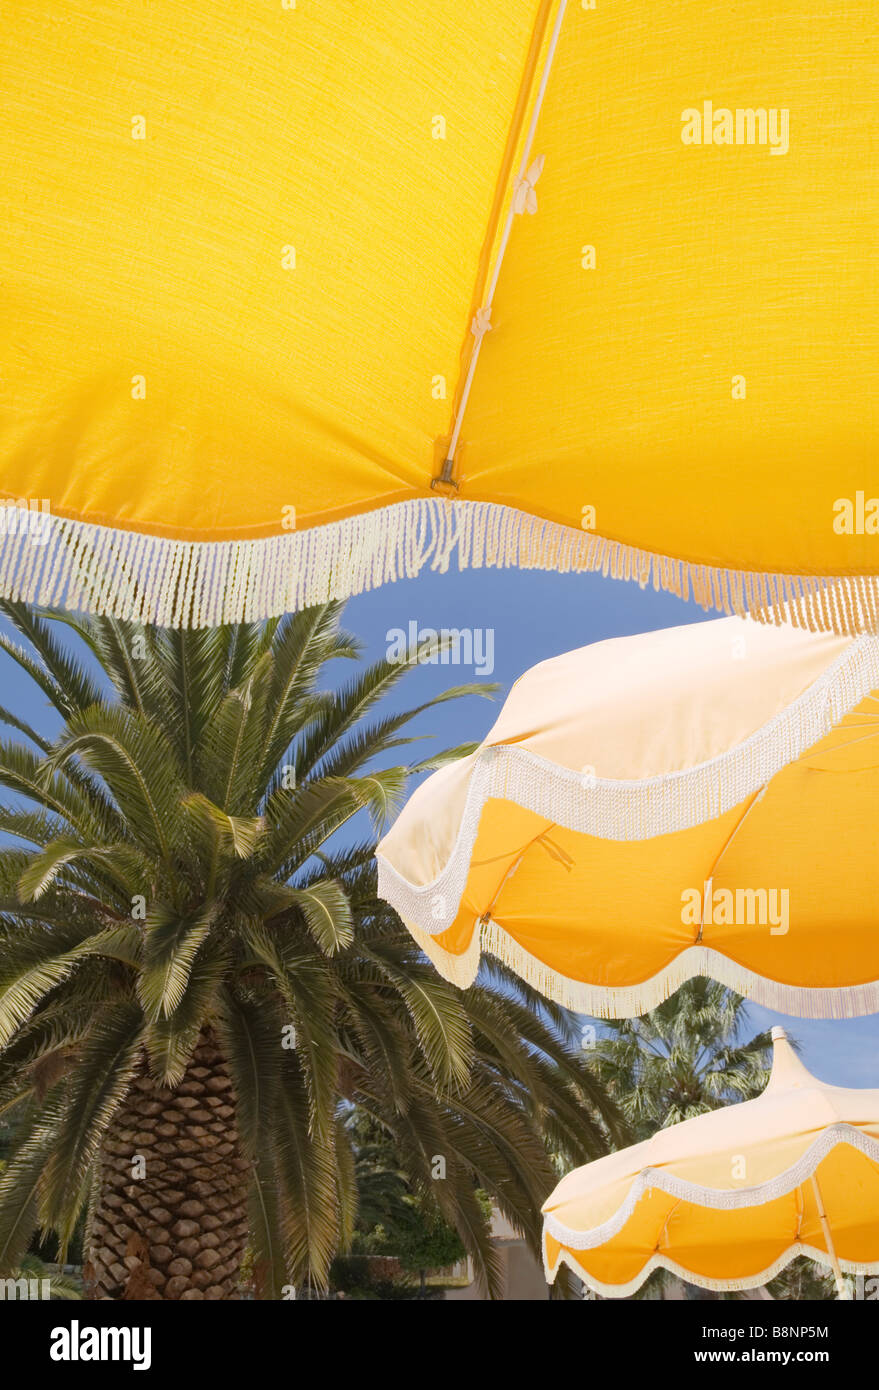 Looking upwards at yellow beach umbrellas with blue sky and palm tree behind. - Stock Image